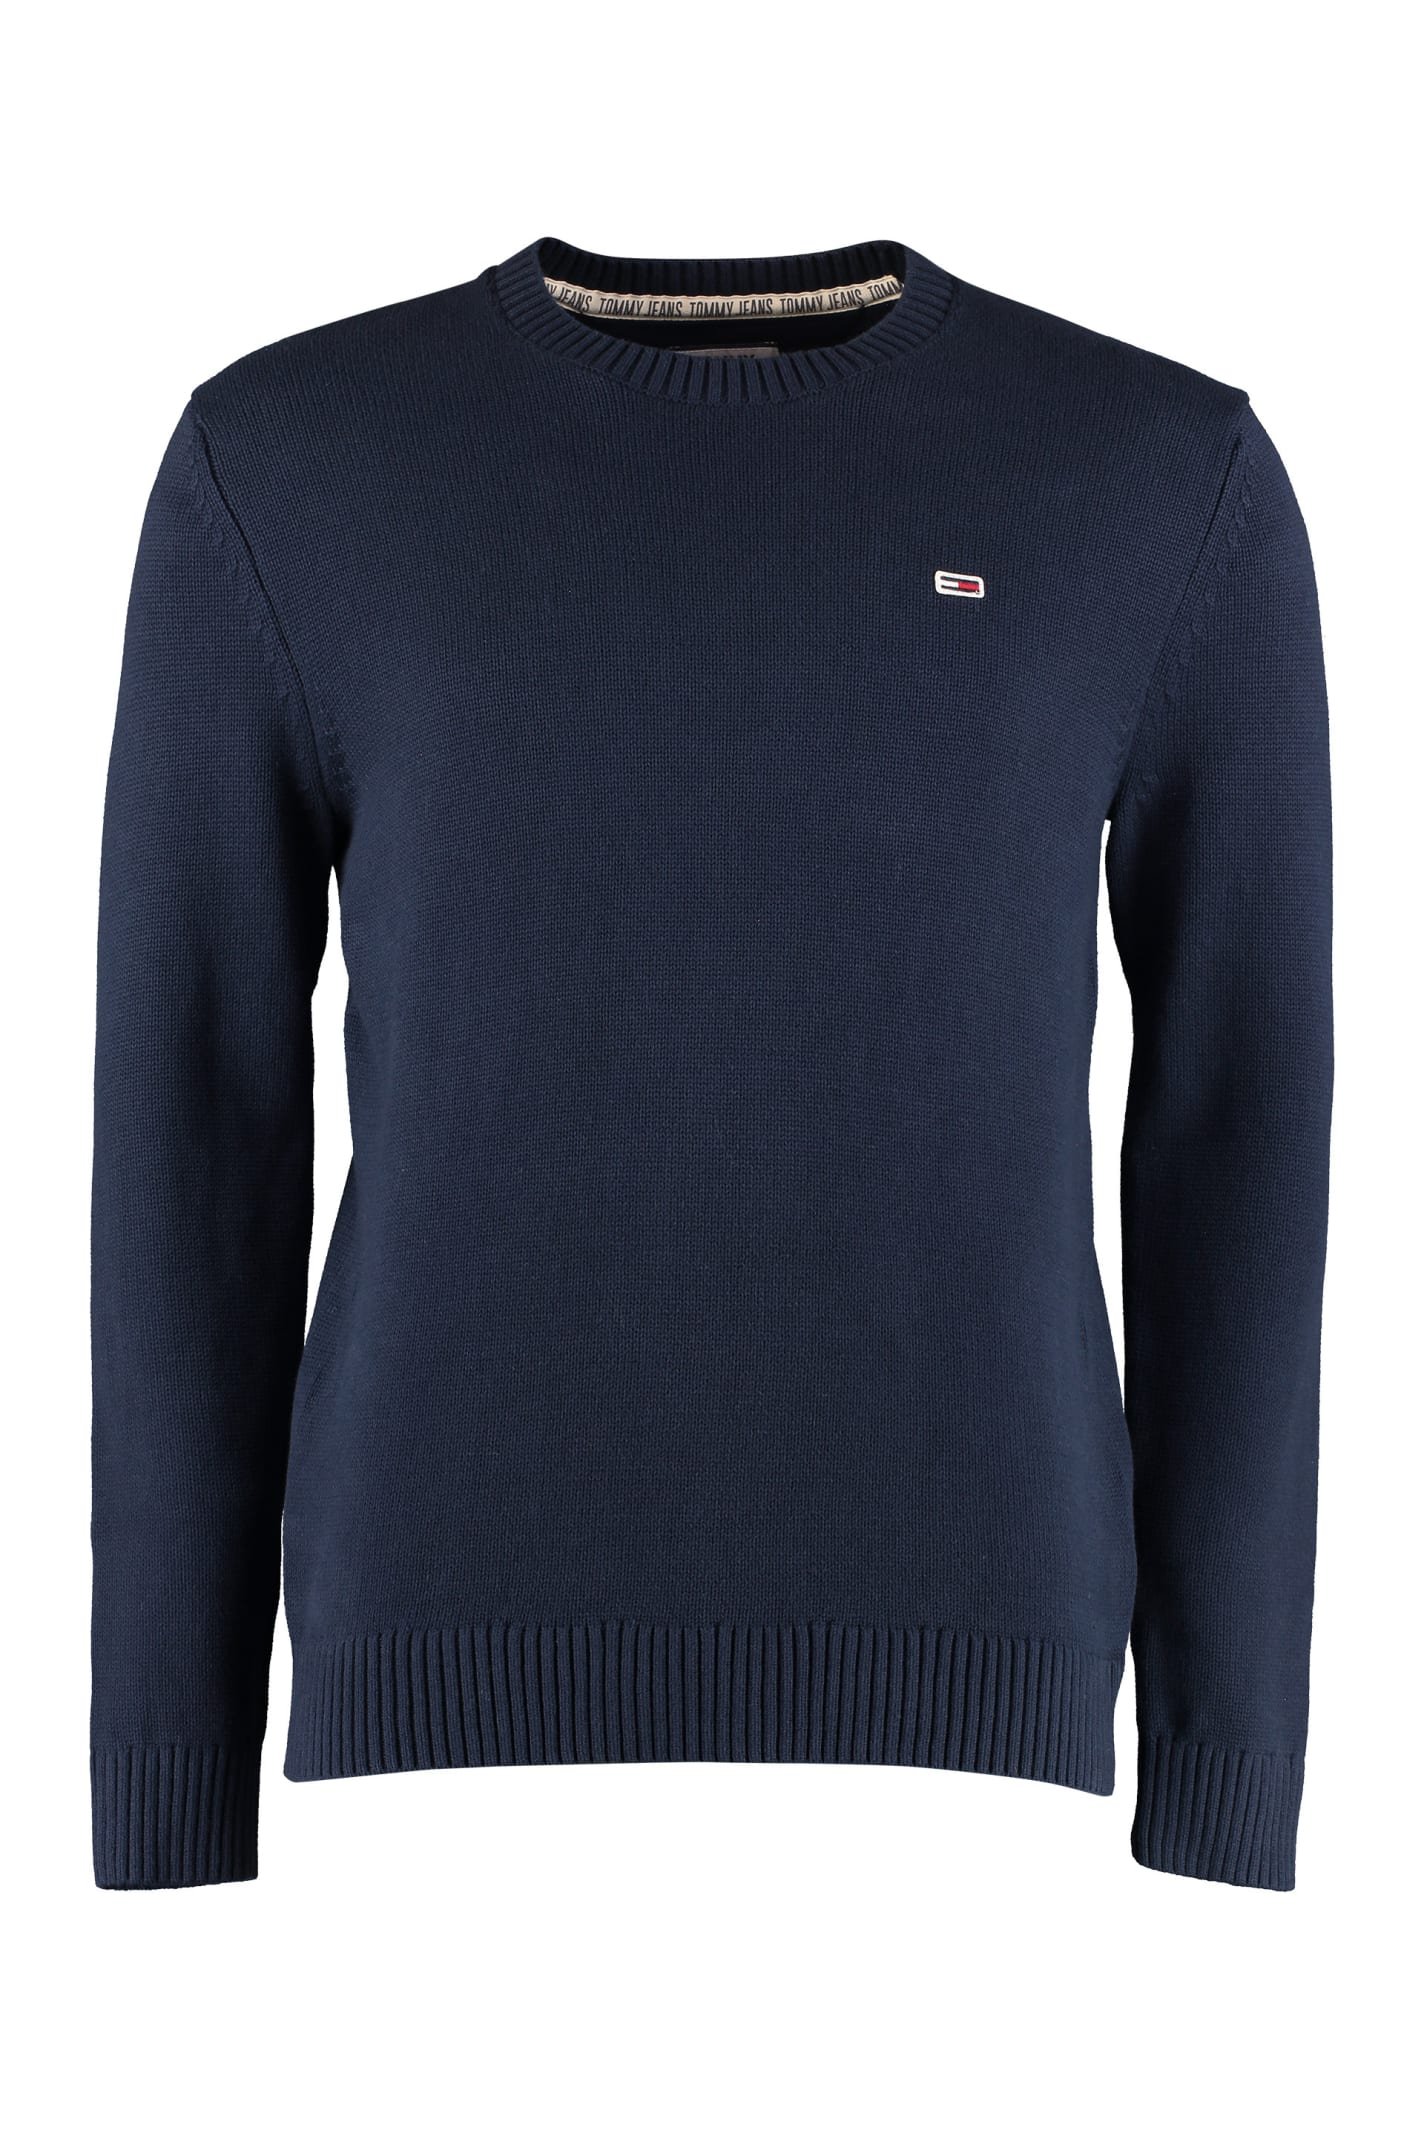 Tommy Jeans Long-sleeved Crew-neck Sweater